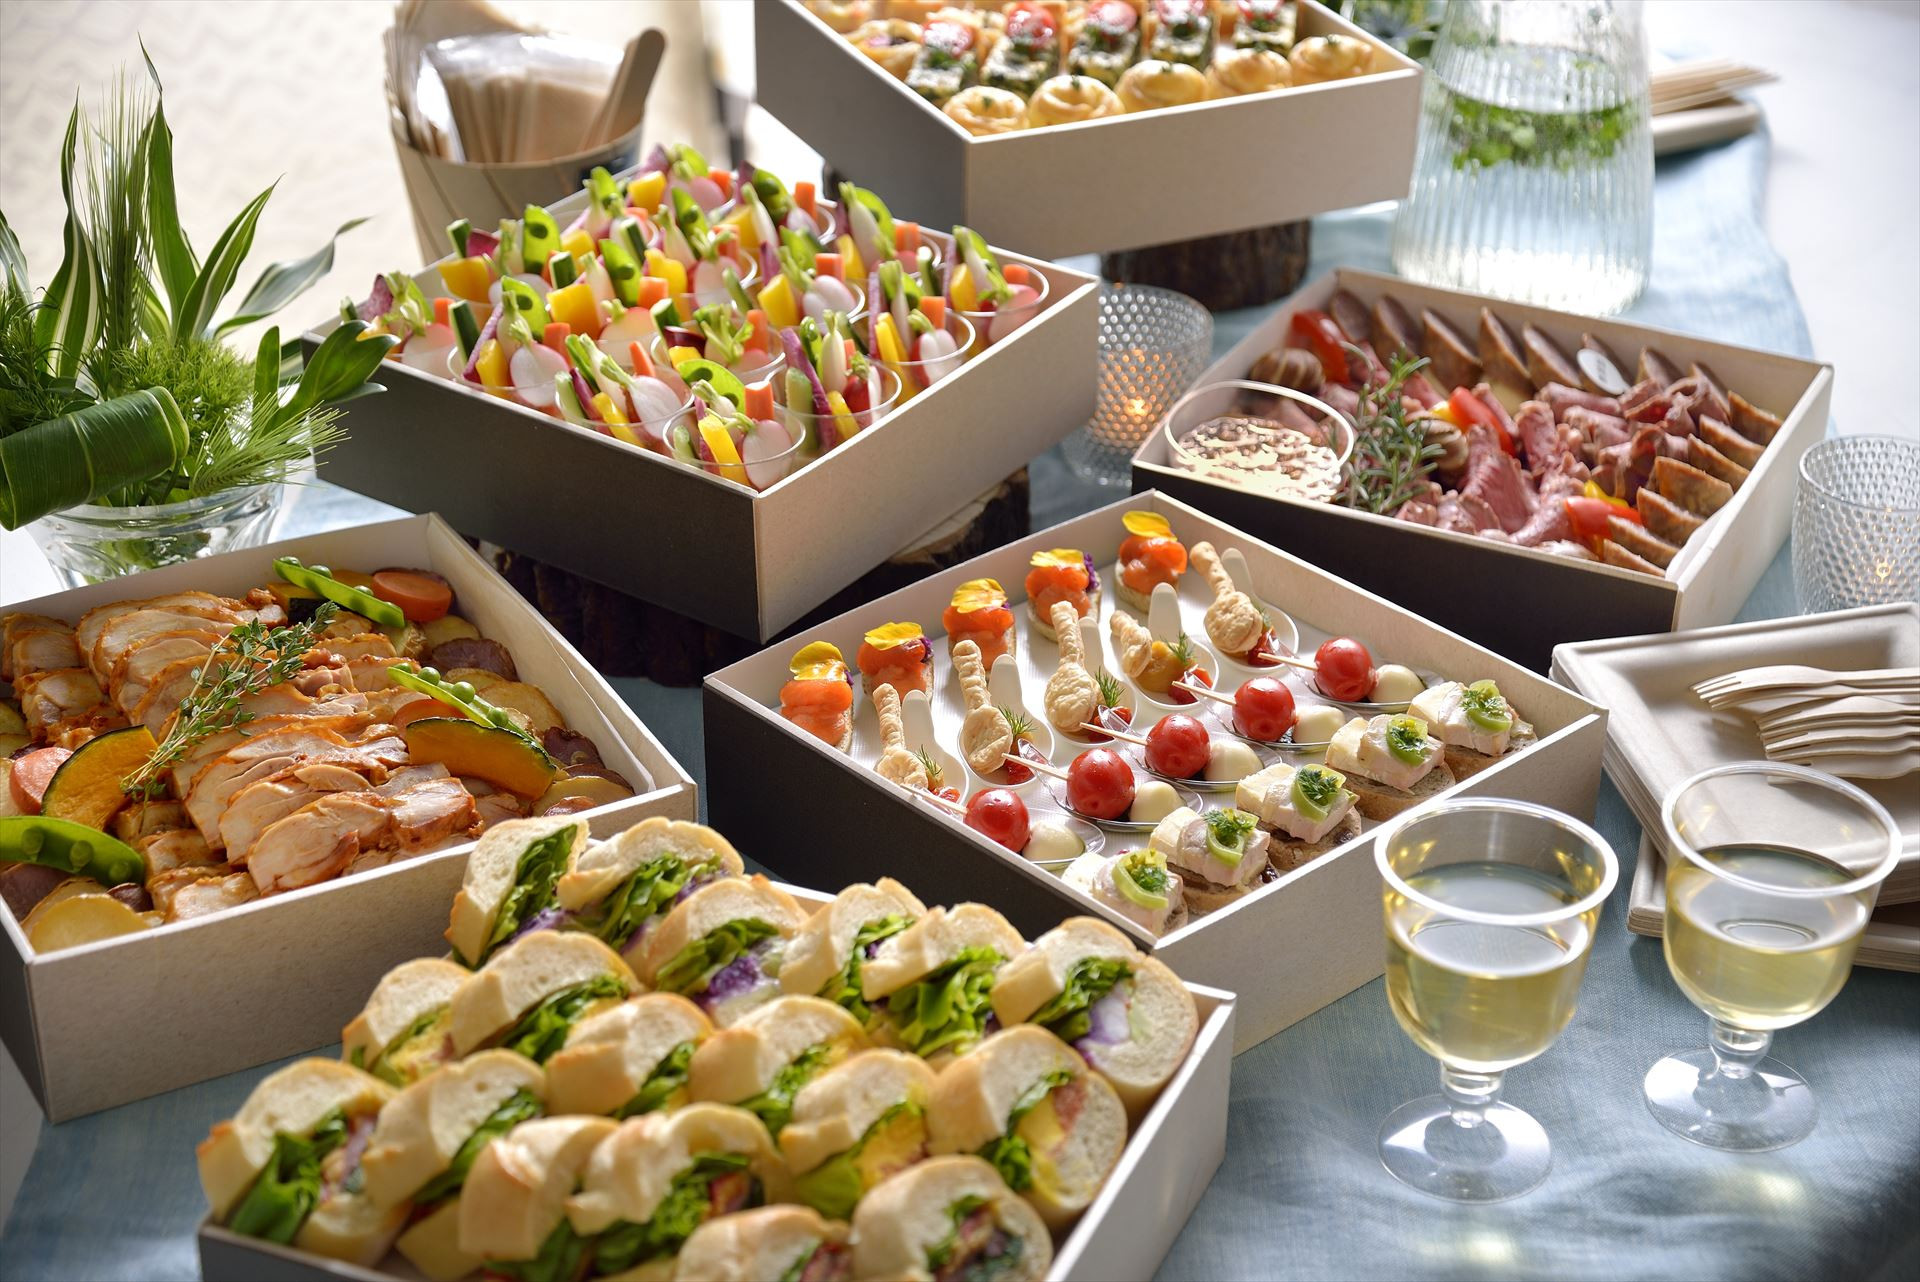 L'api catering & delivery